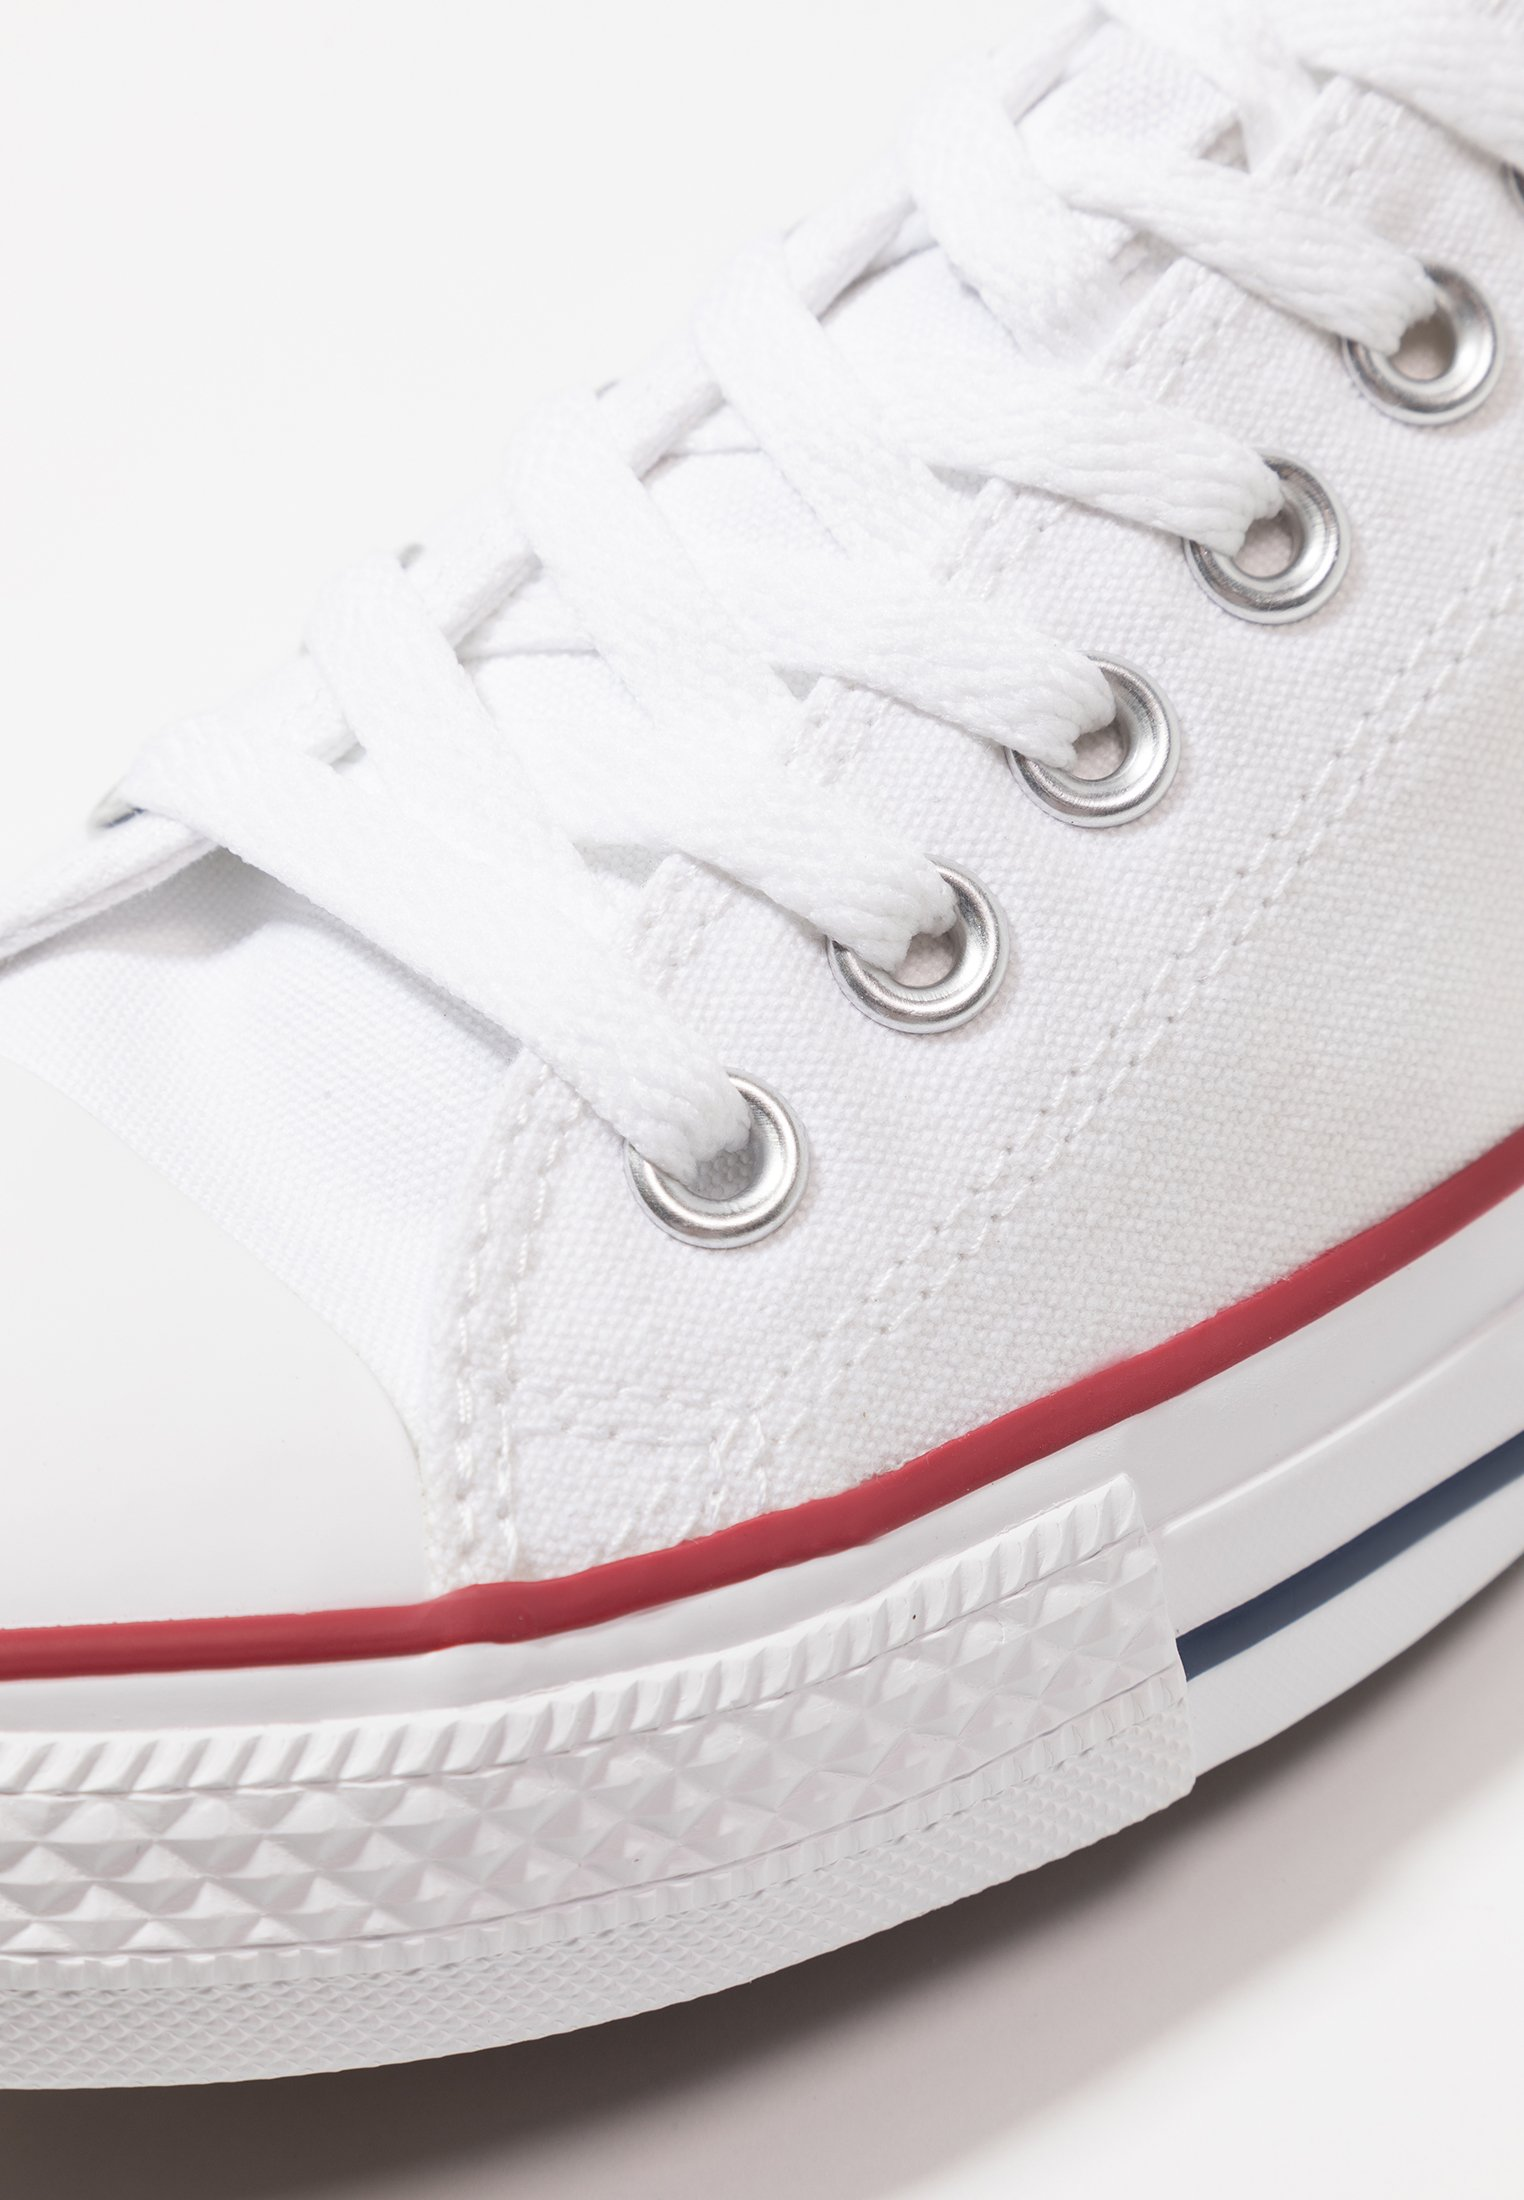 CHUCK TAYLOR ALL STAR OX Sneakers optical white